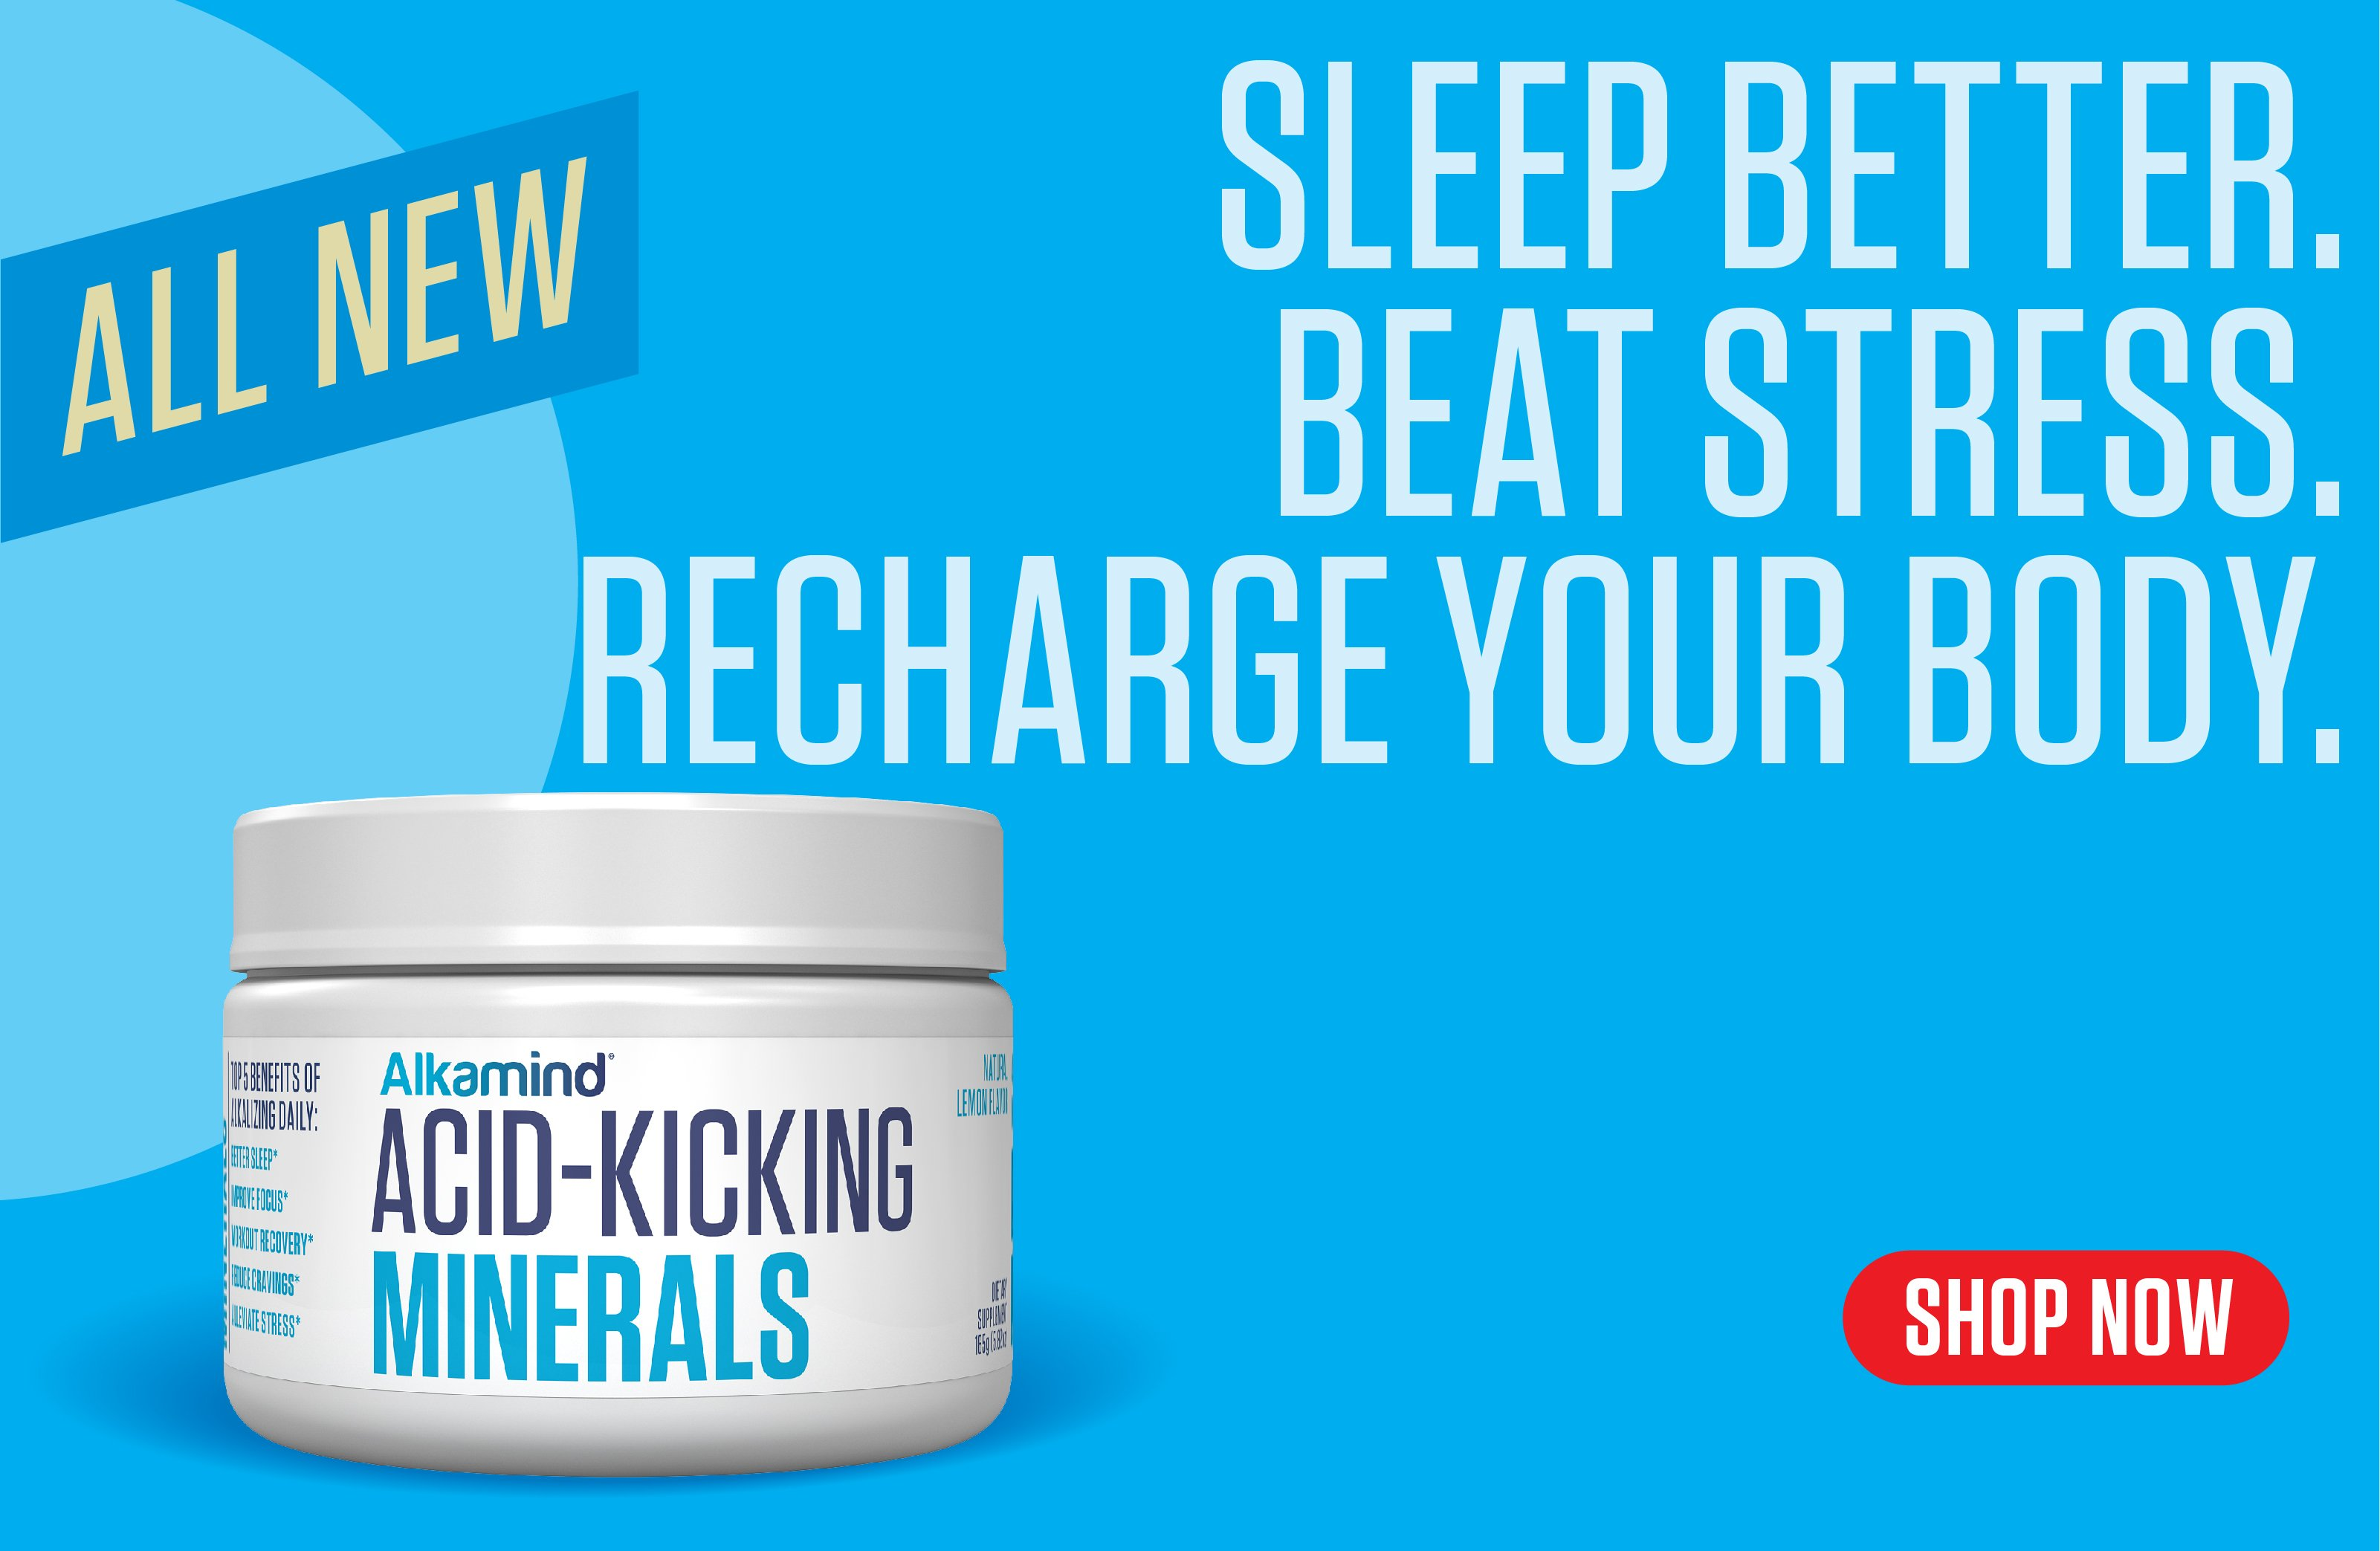 sleep better, beat stress, recharge your body